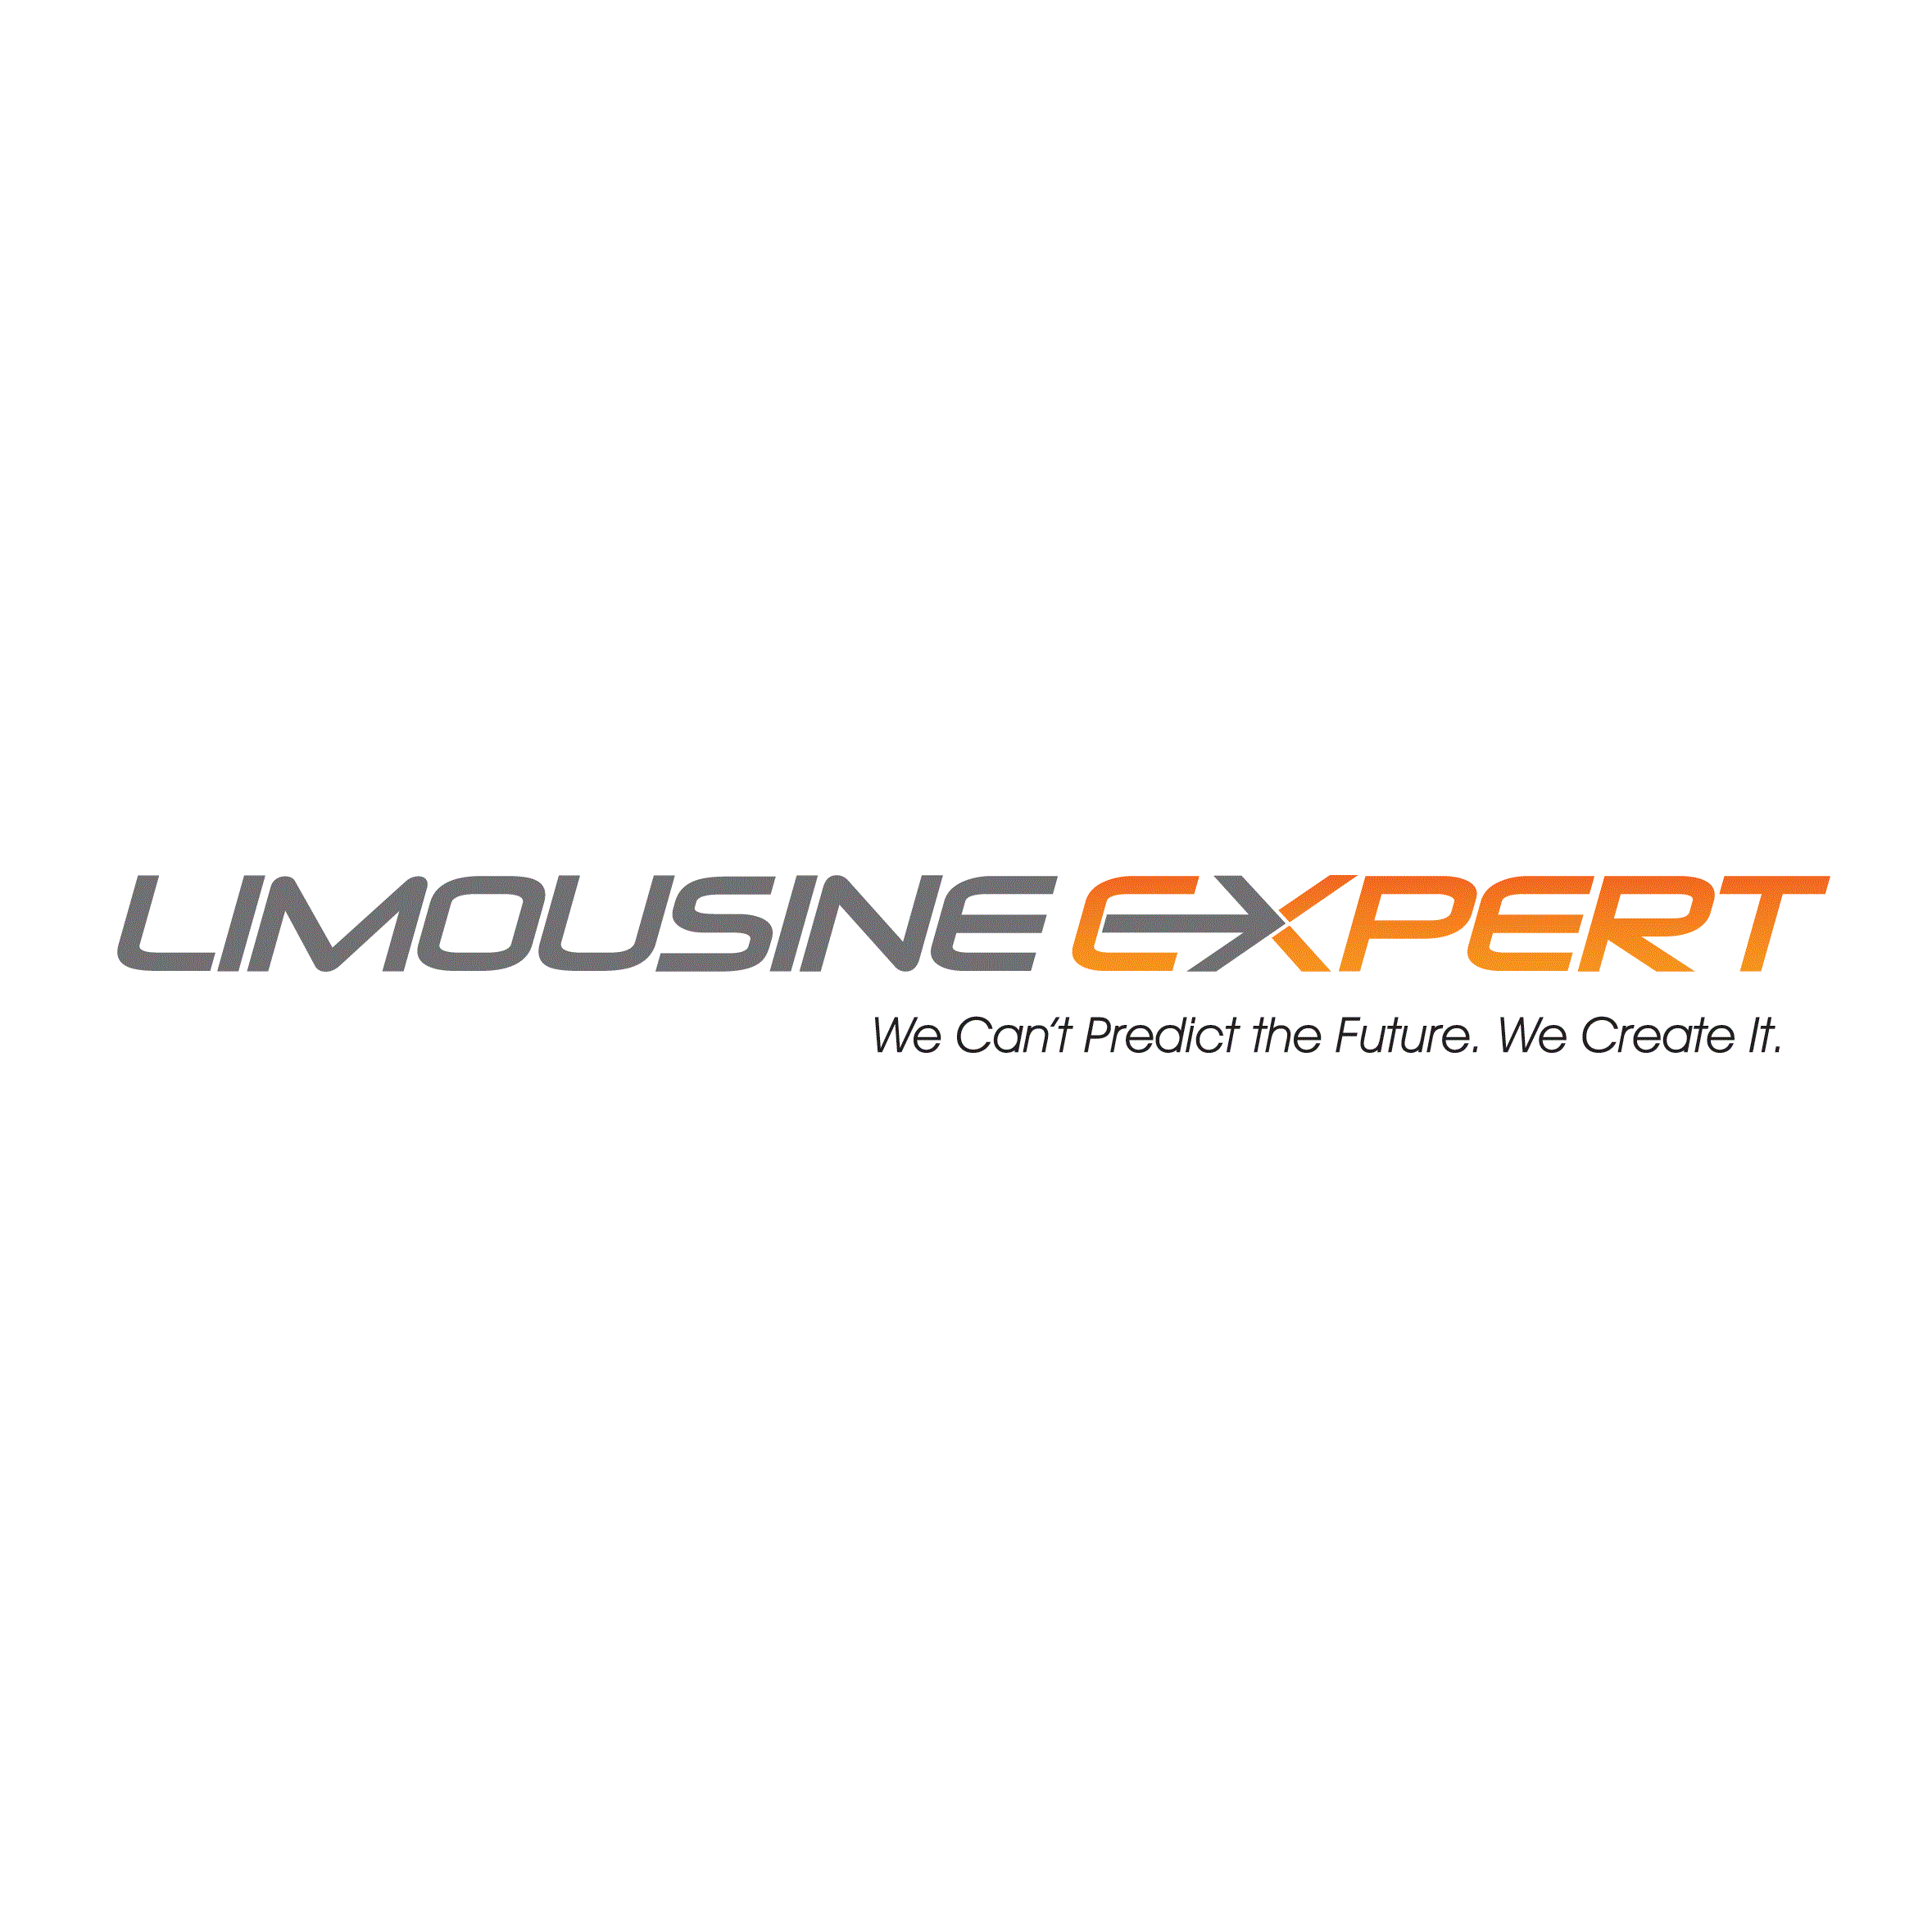 Limousine Expert Consulting